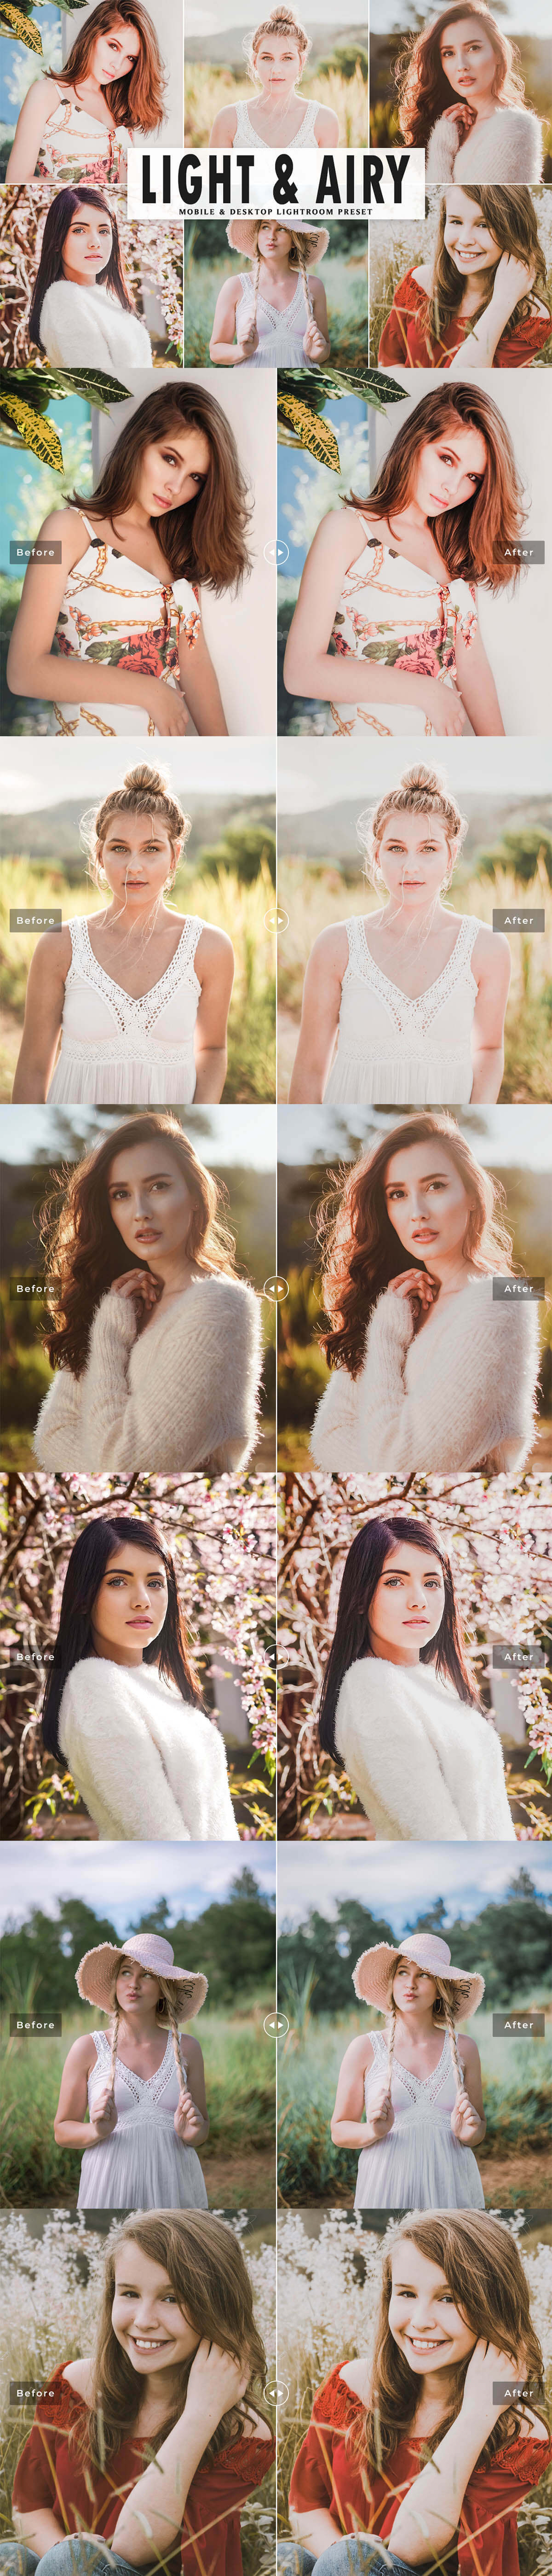 Free Light & Airy Lightroom Preset